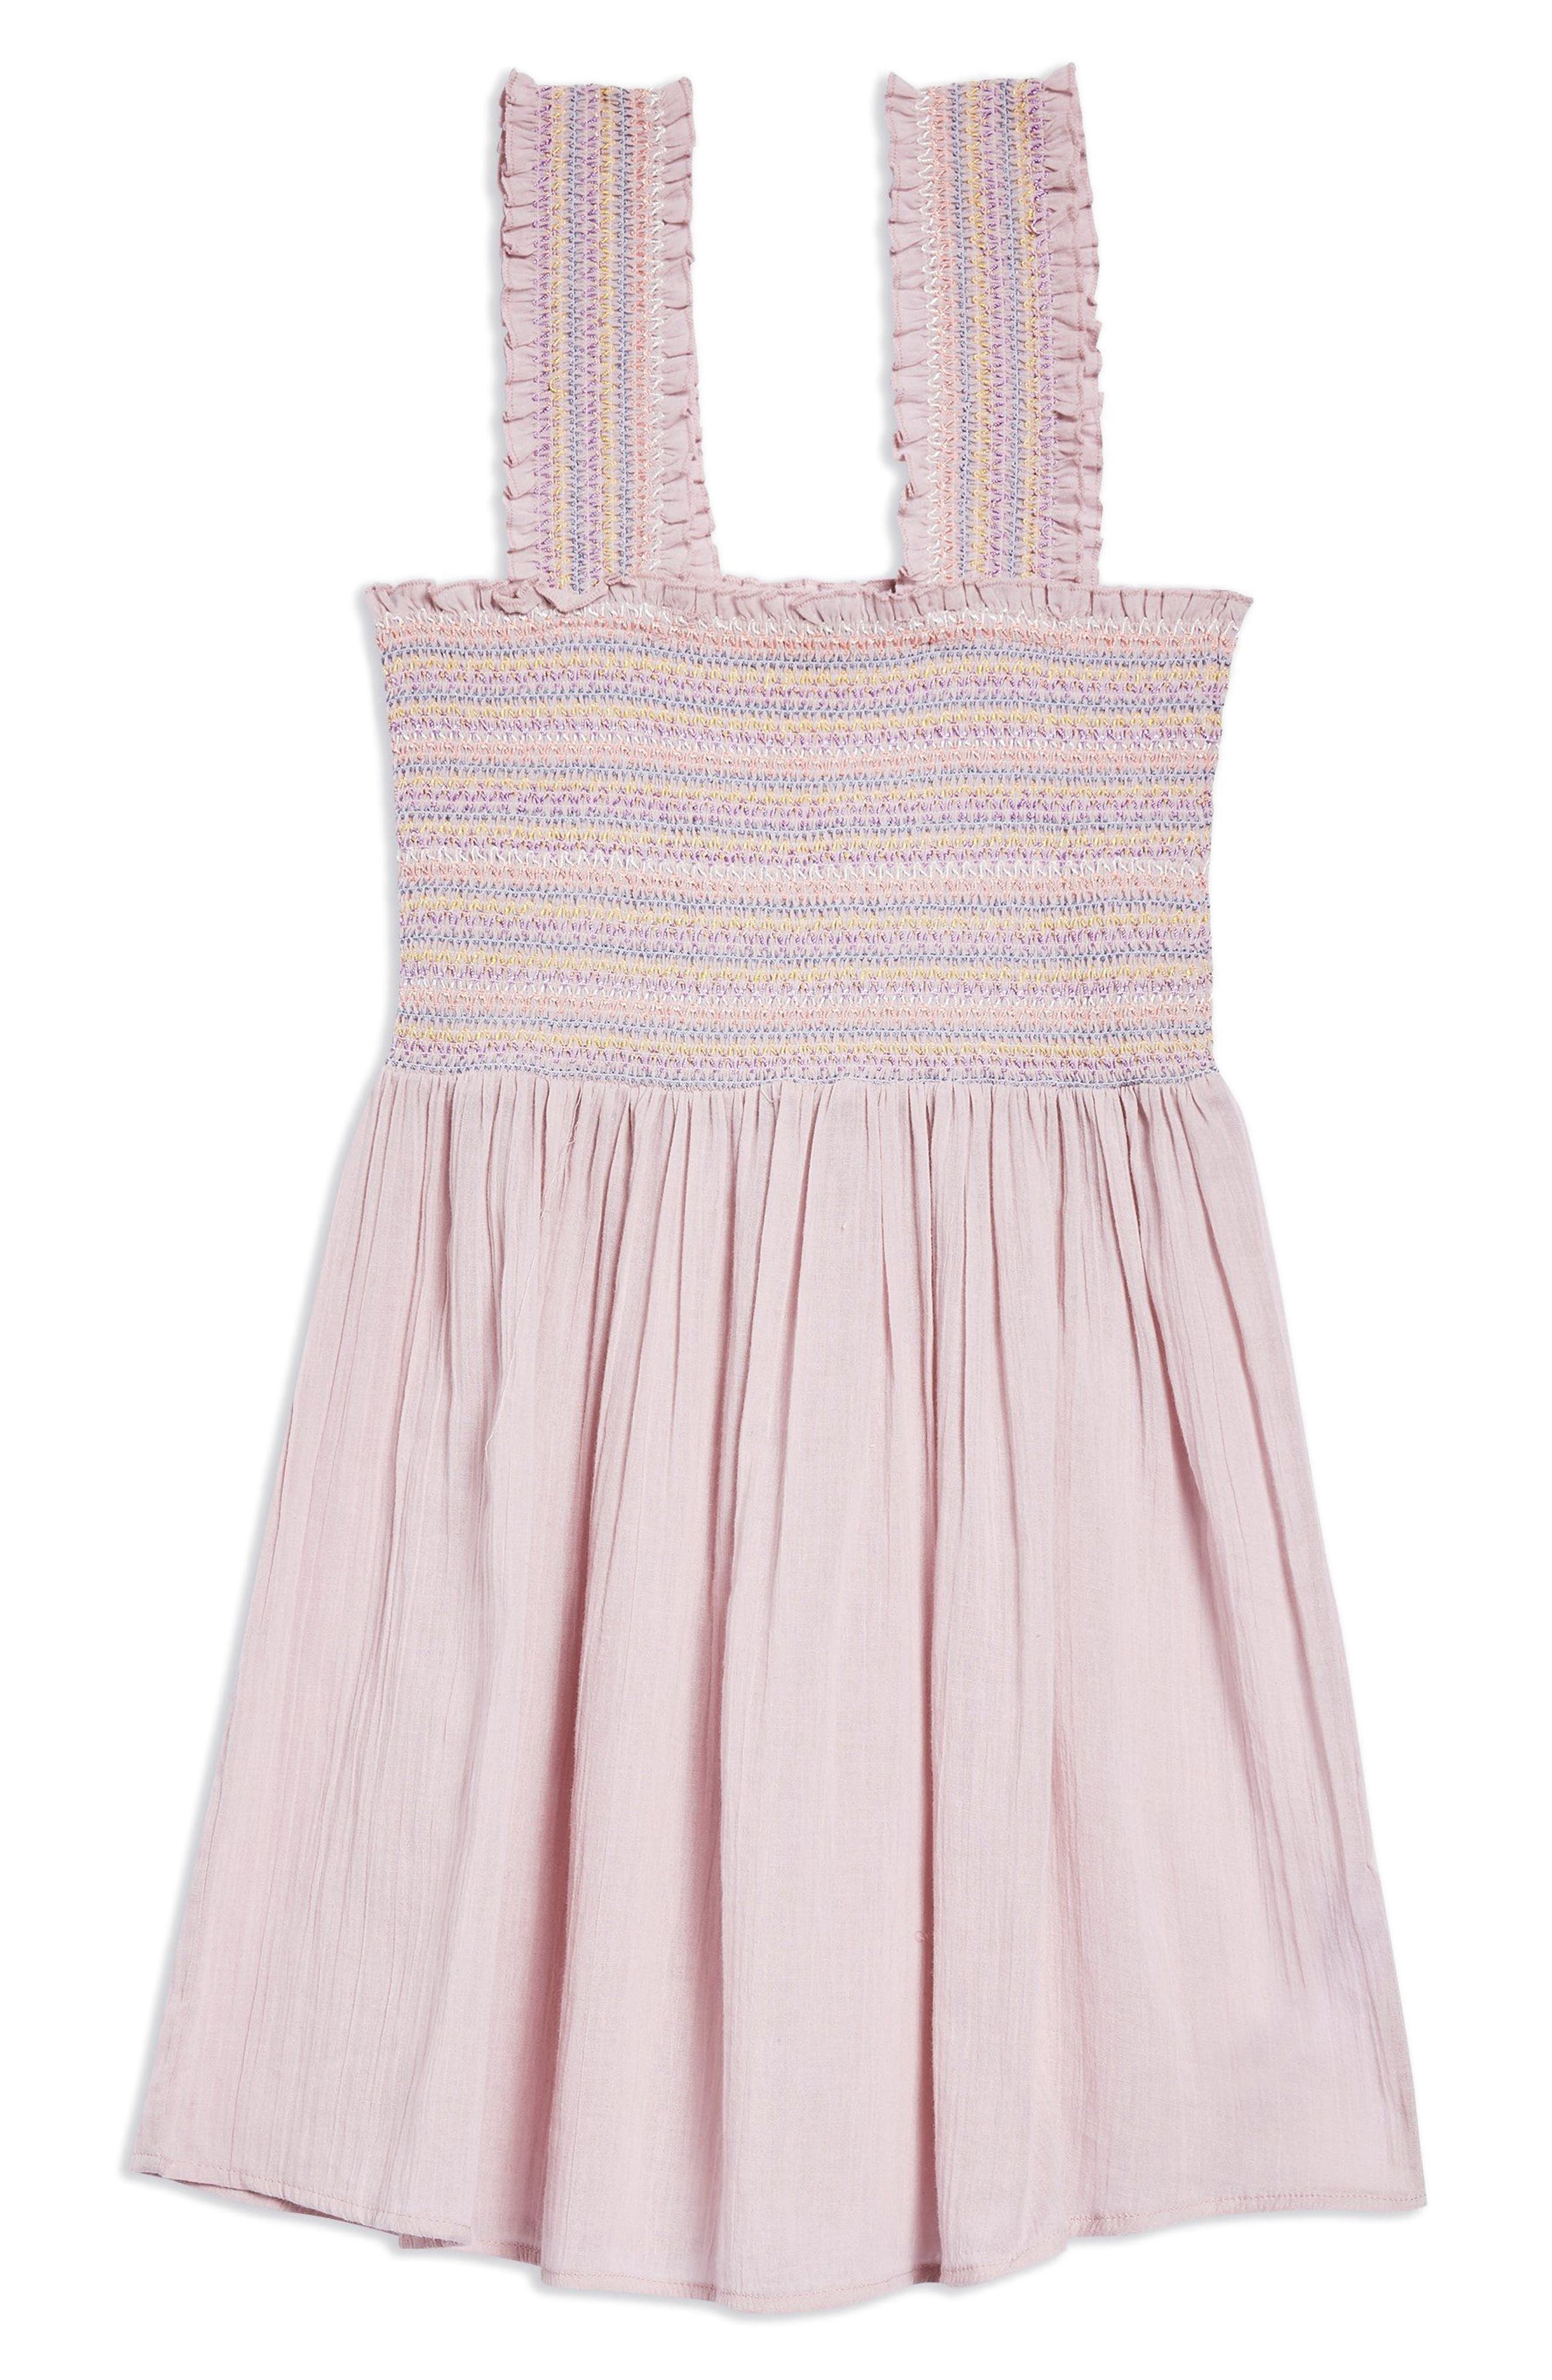 Smocked Mini Sundress,                             Alternate thumbnail 4, color,                             Pink Multi